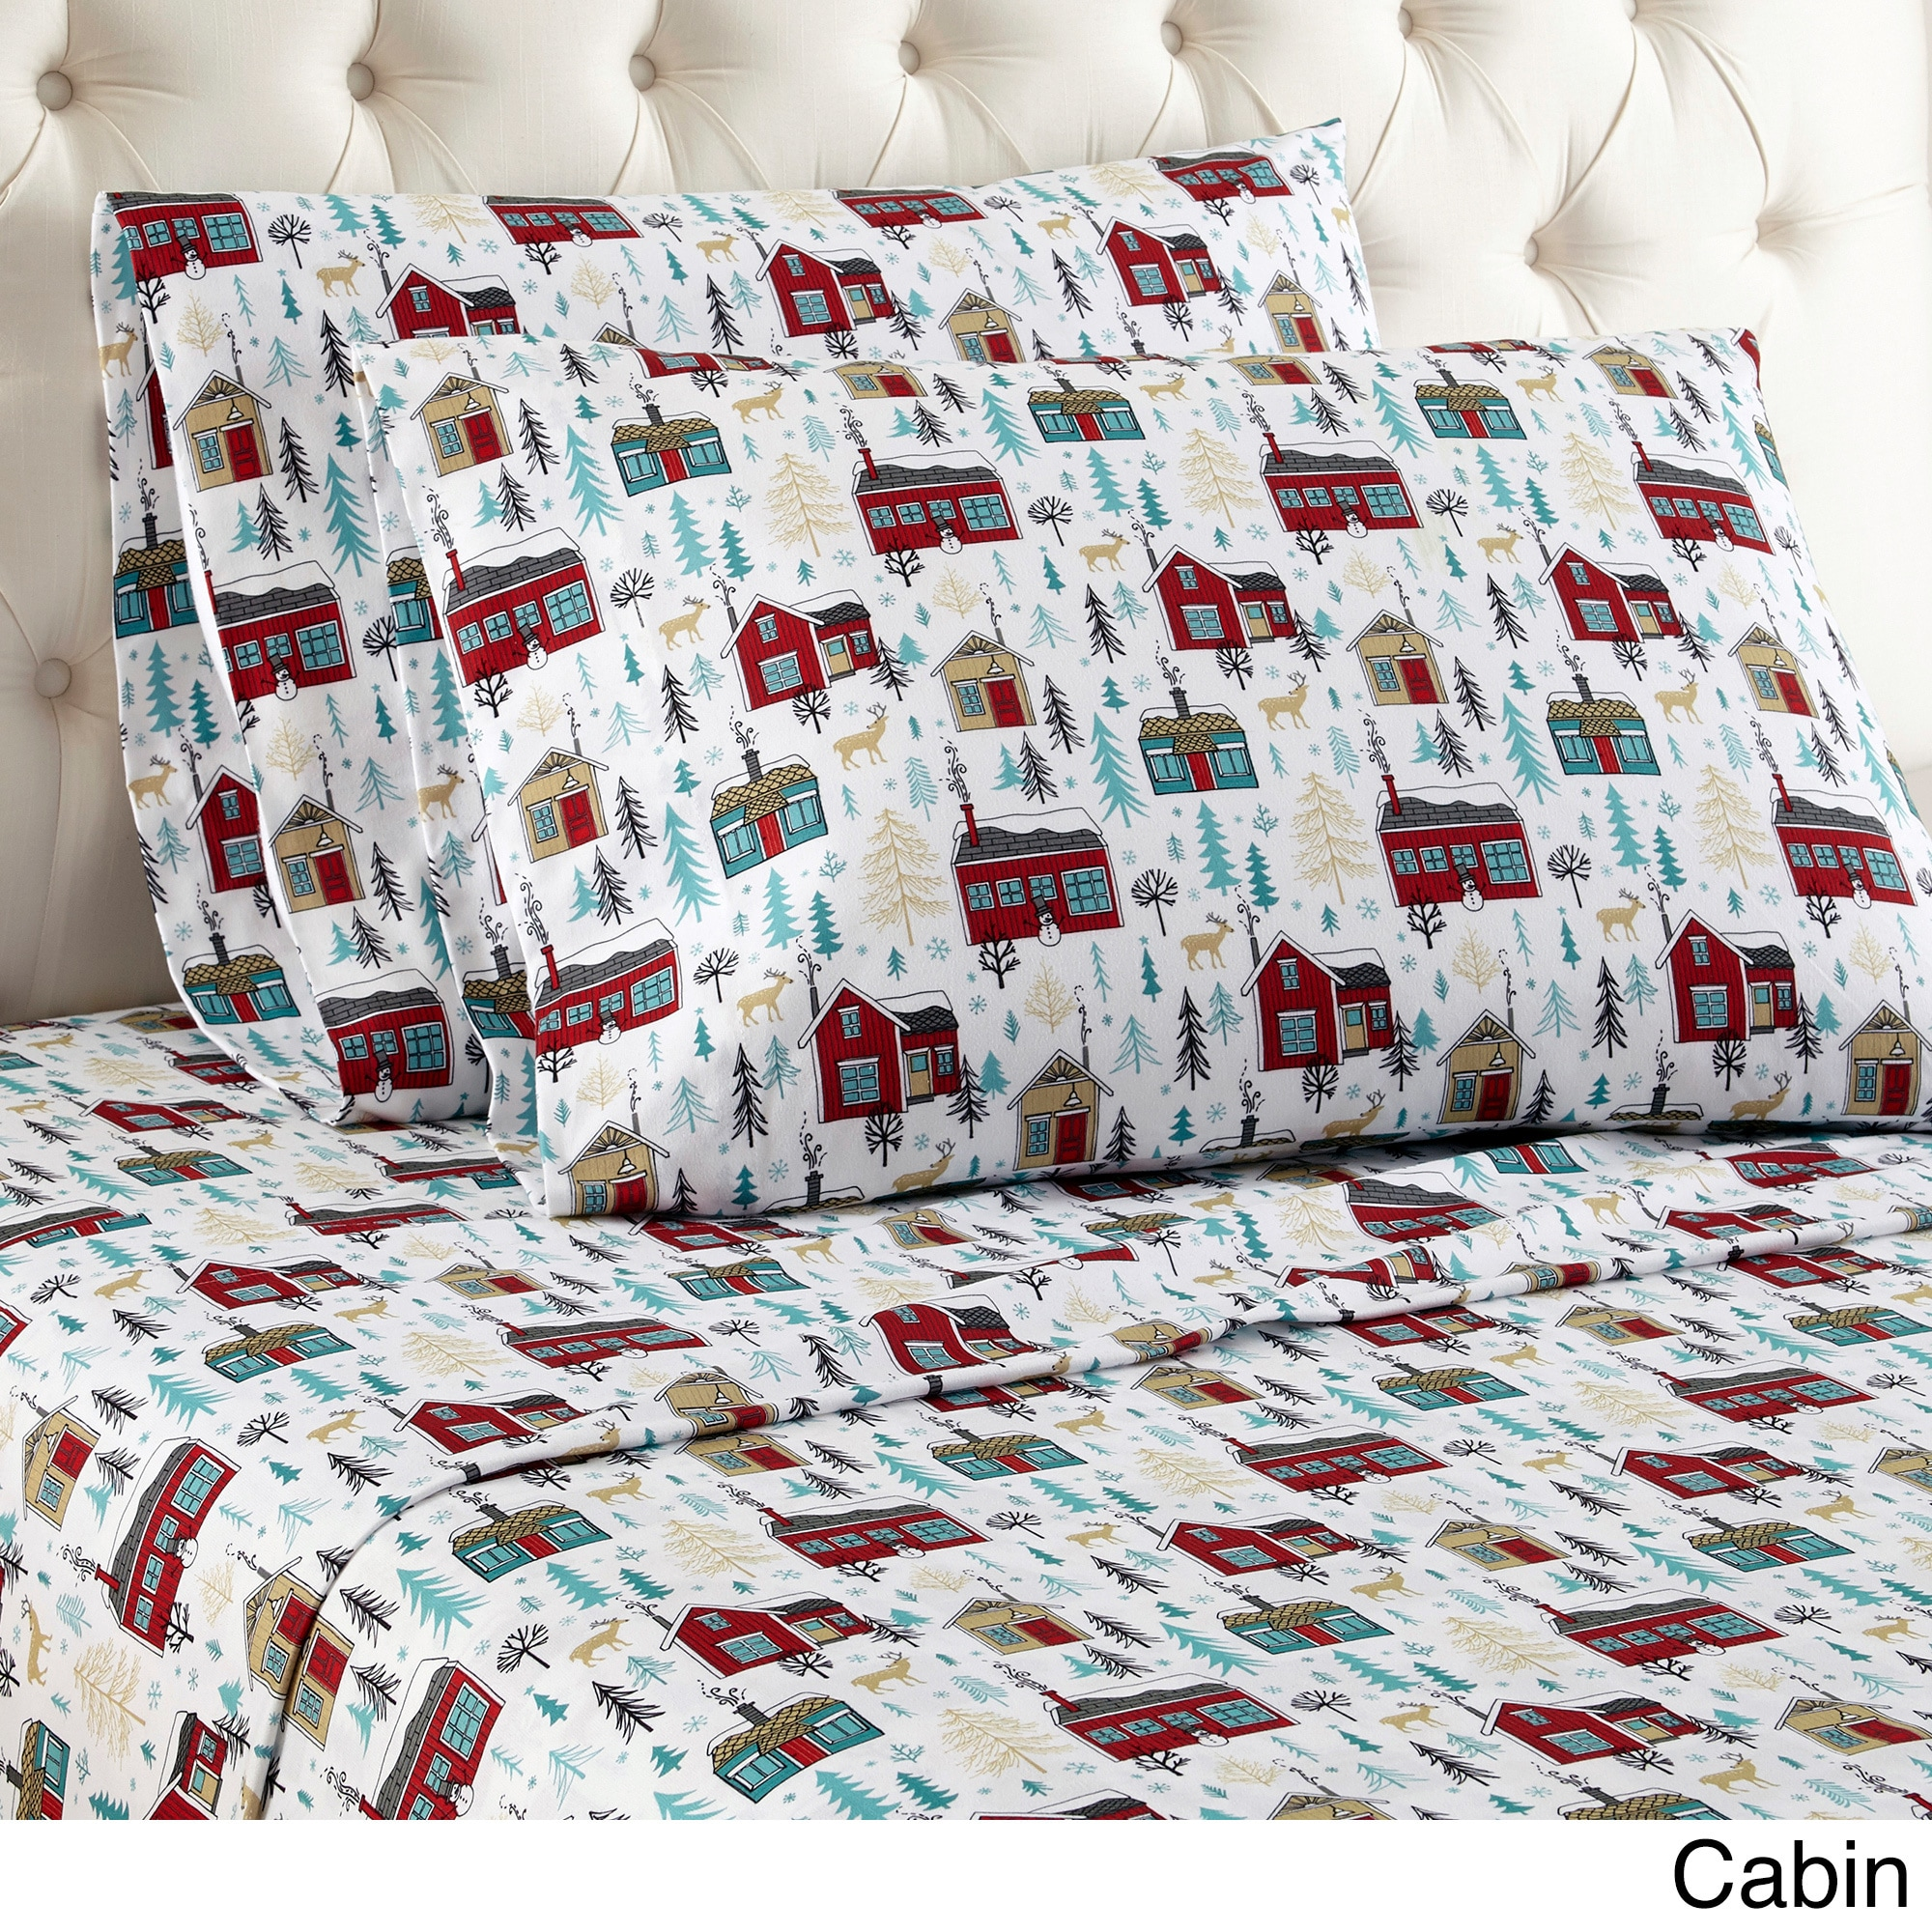 rustic sets bedspreads bedding cabin grand quilt info lodge cabins log bed canyon onlinechange discount